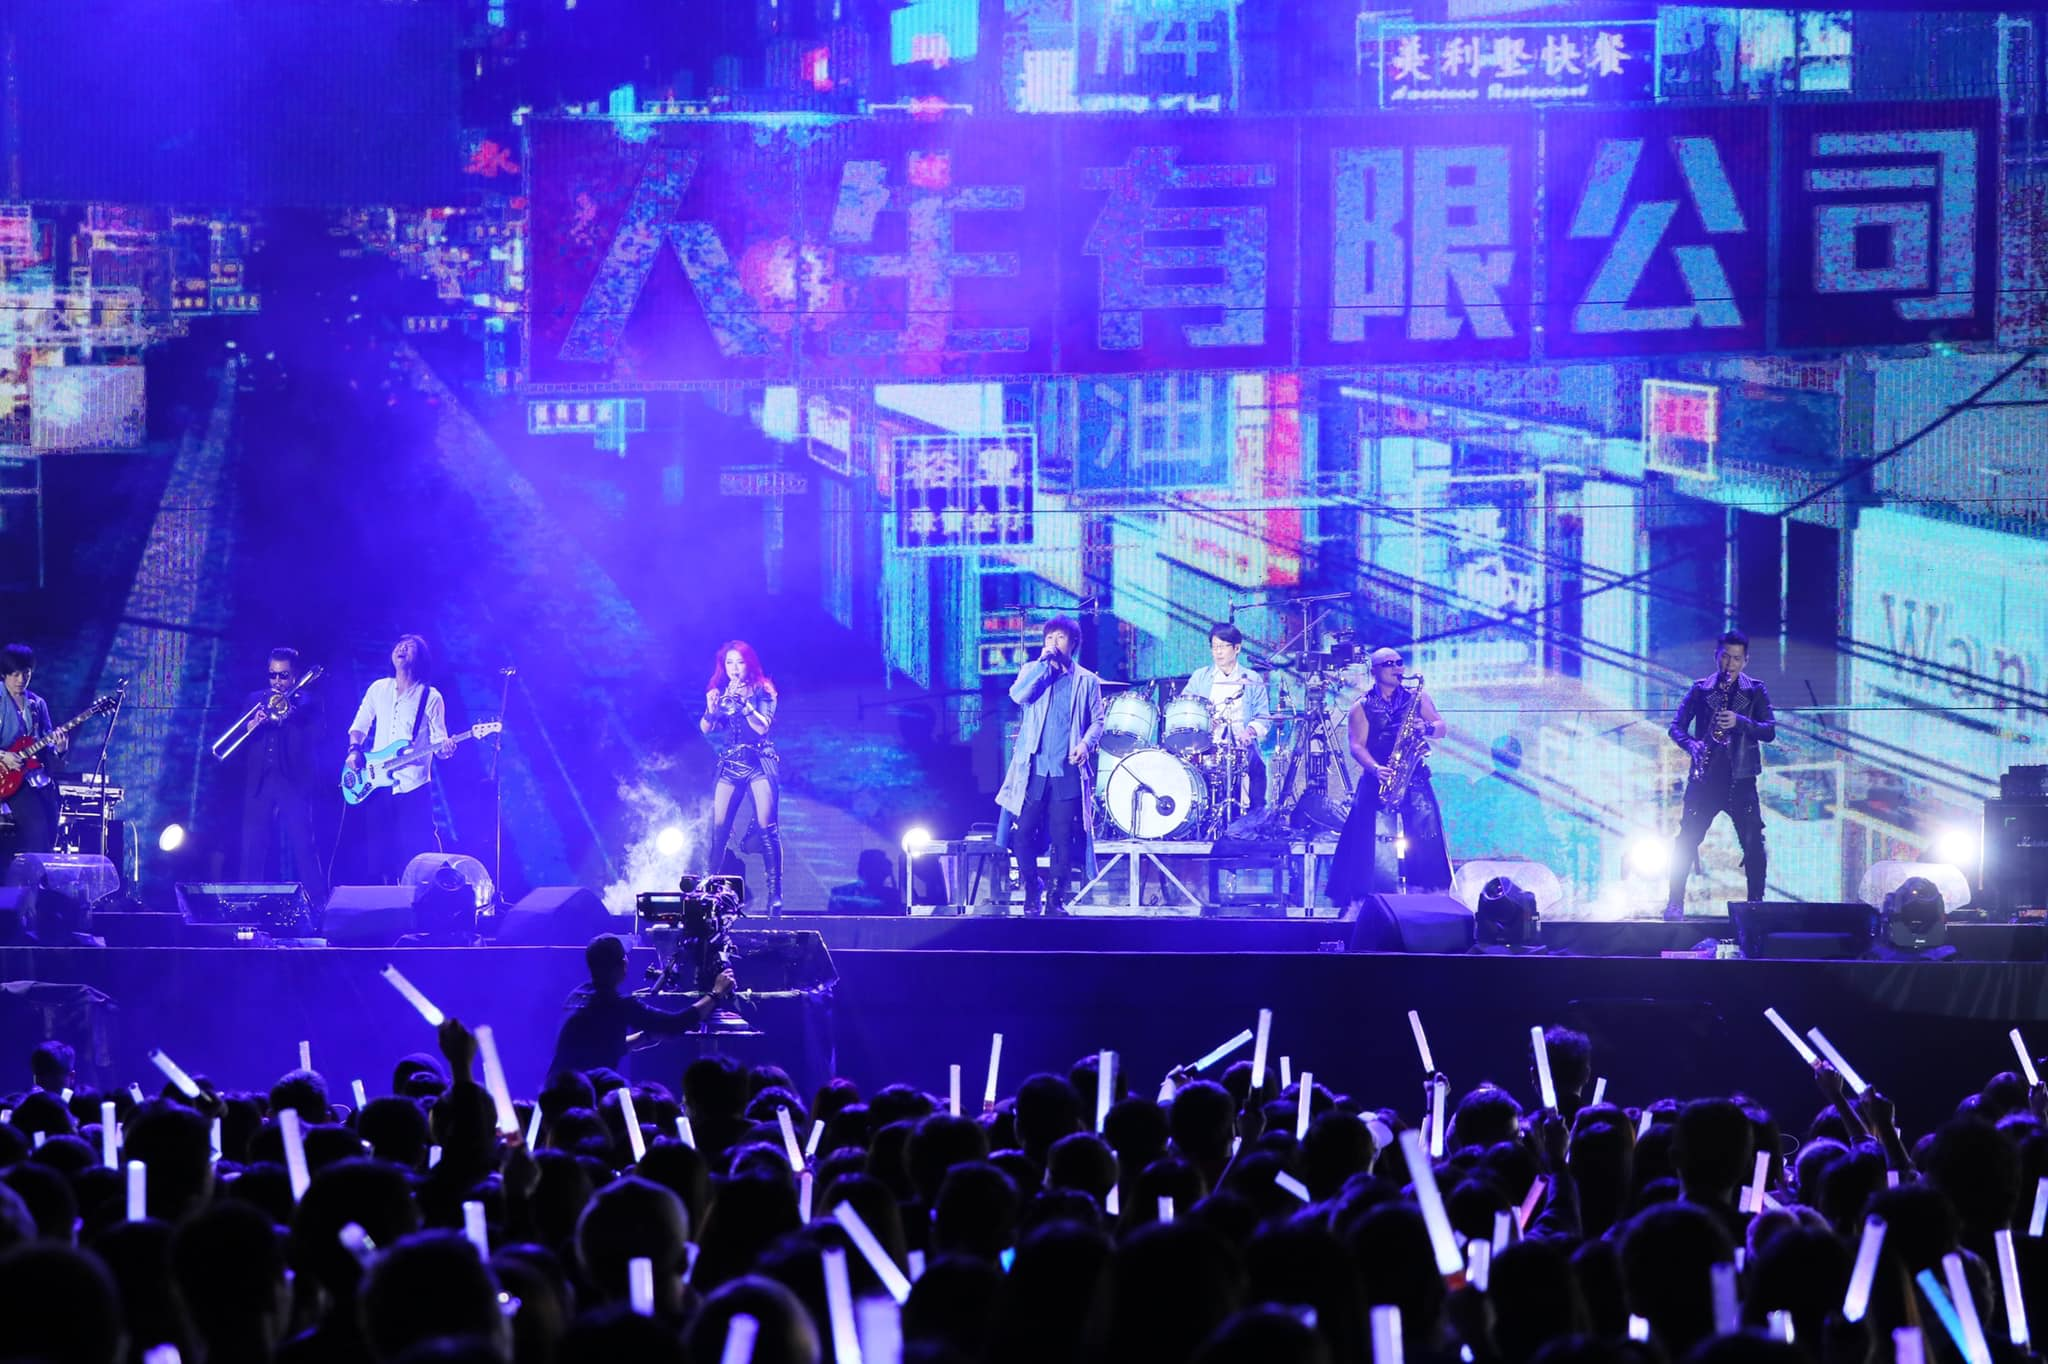 Life Tour, Rock concert, Mayday, Music, , Guitarist, , Concert, B'in Music Co. Ltd, Musician, Life Tour, concert, stage, rock concert, entertainment, crowd, performance, guitarist, auditorium, audience, event